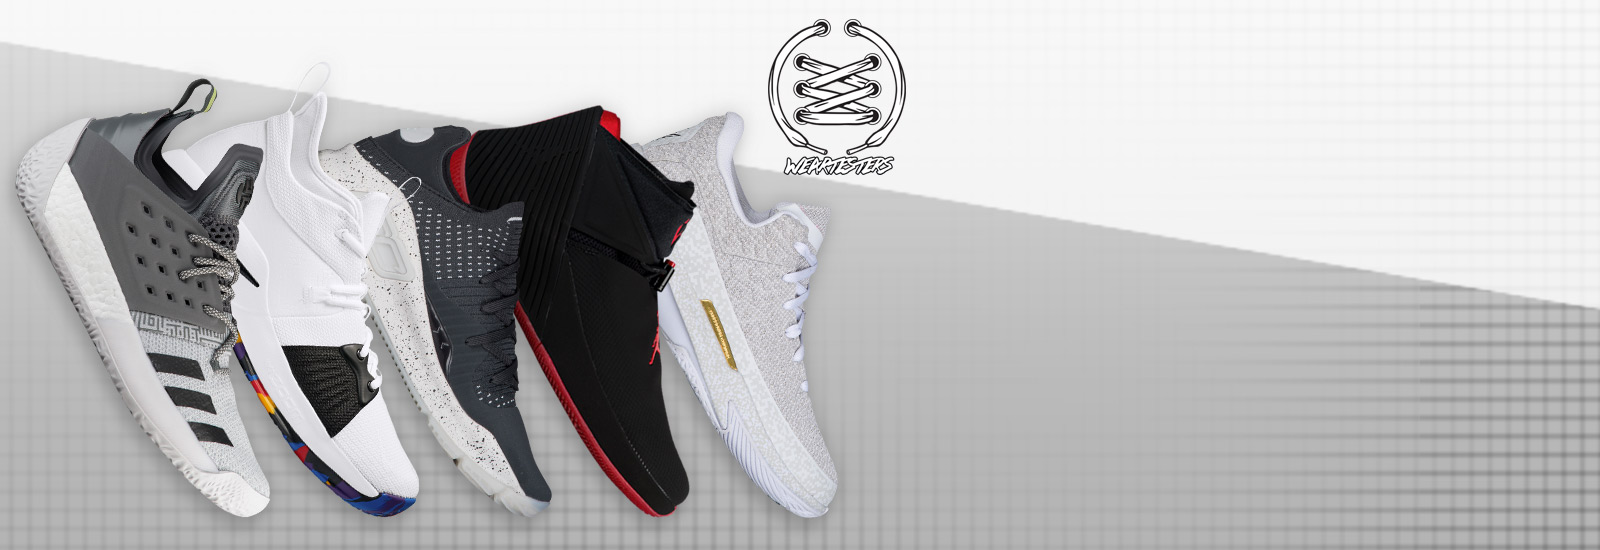 f57932ba120d Sneaker Reviews — Experts Break Down The Hottest Shoes Around ...